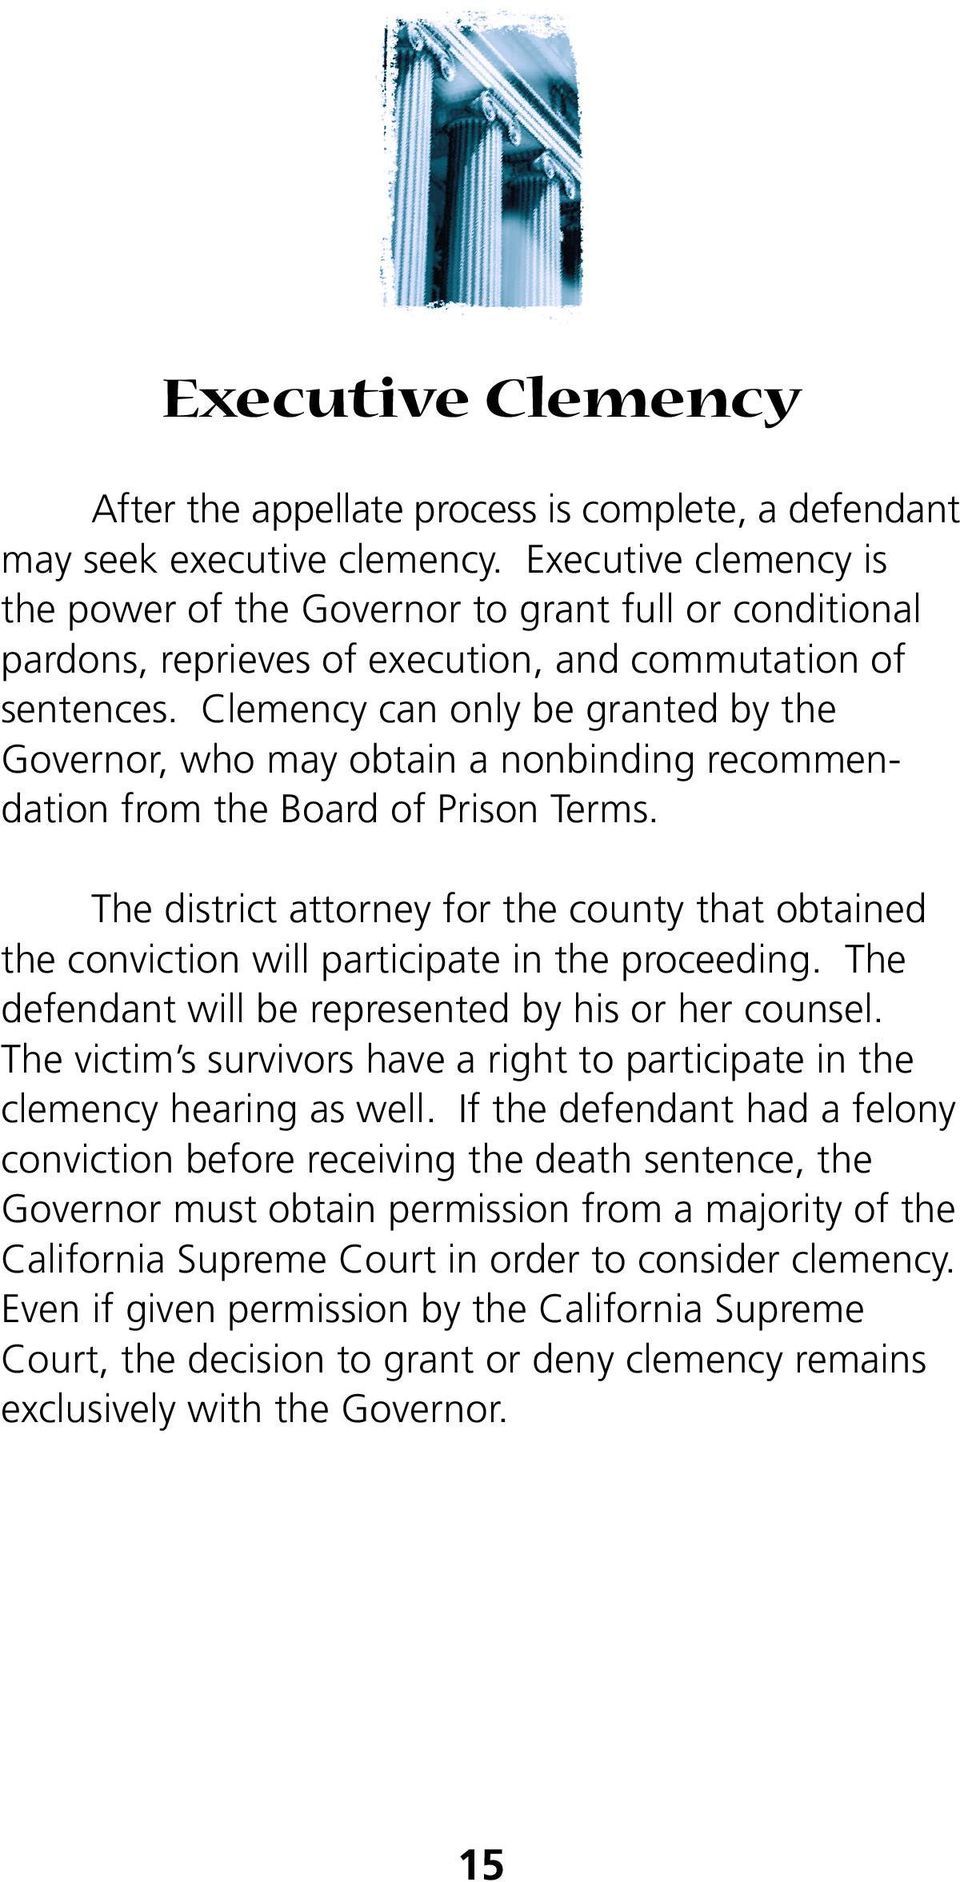 Clemency can only be granted by the Governor, who may obtain a nonbinding recommendation from the Board of Prison Terms.